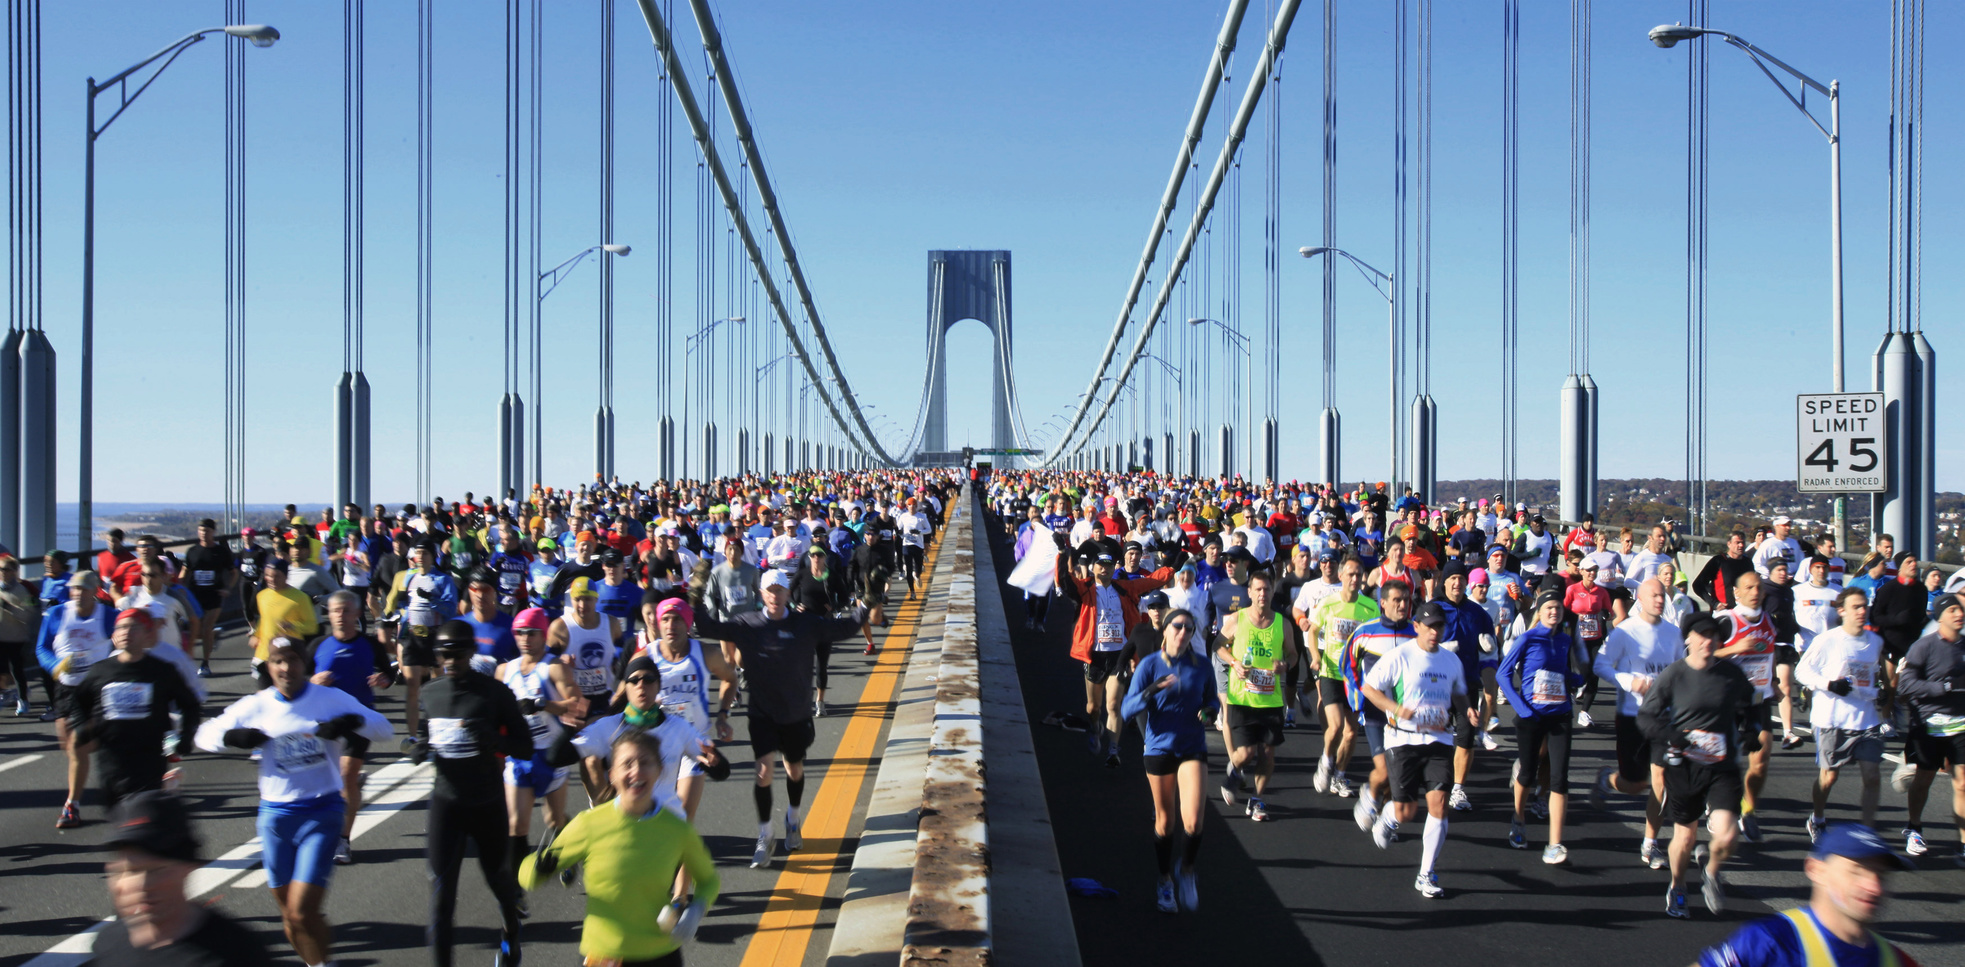 marathon racers running across a bridge